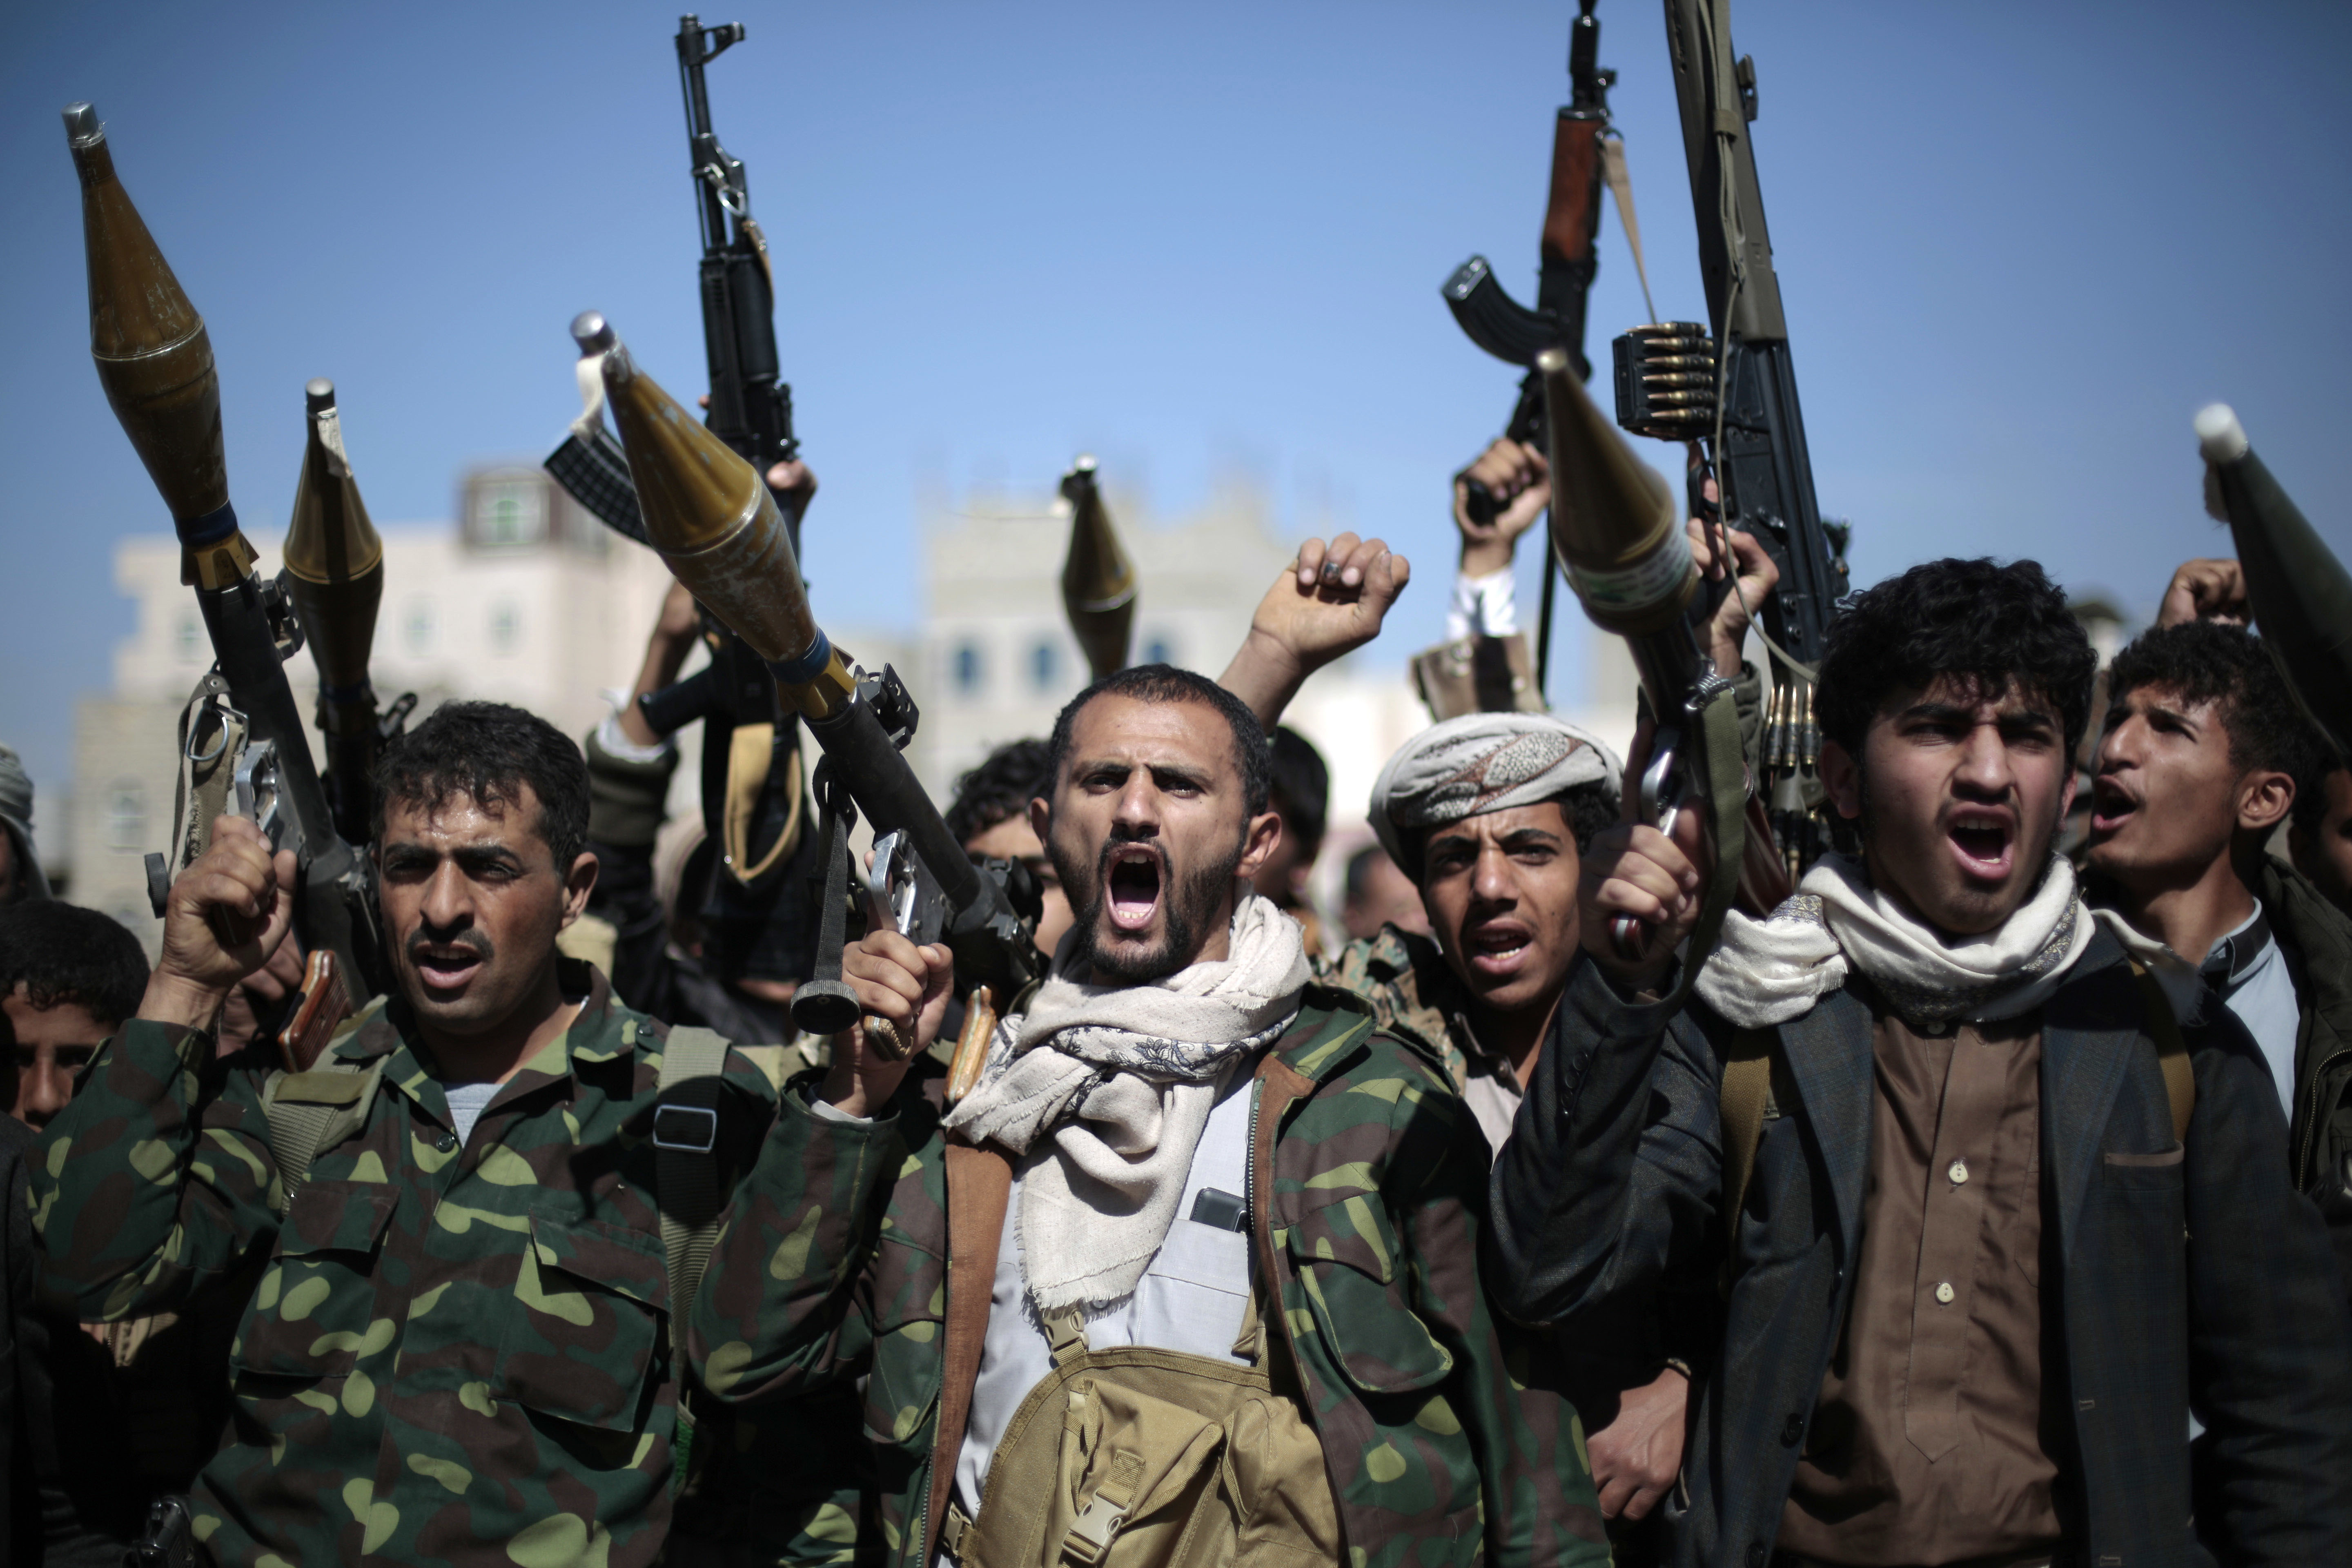 FILE - In this Nov. 24, 2016, photo, tribesmen loyal to Houthi rebels hold their weapons as they chant slogans during a gathering to mobilize more fighters into battlefronts in several Yemeni cities, in Sanaa, Yemen.